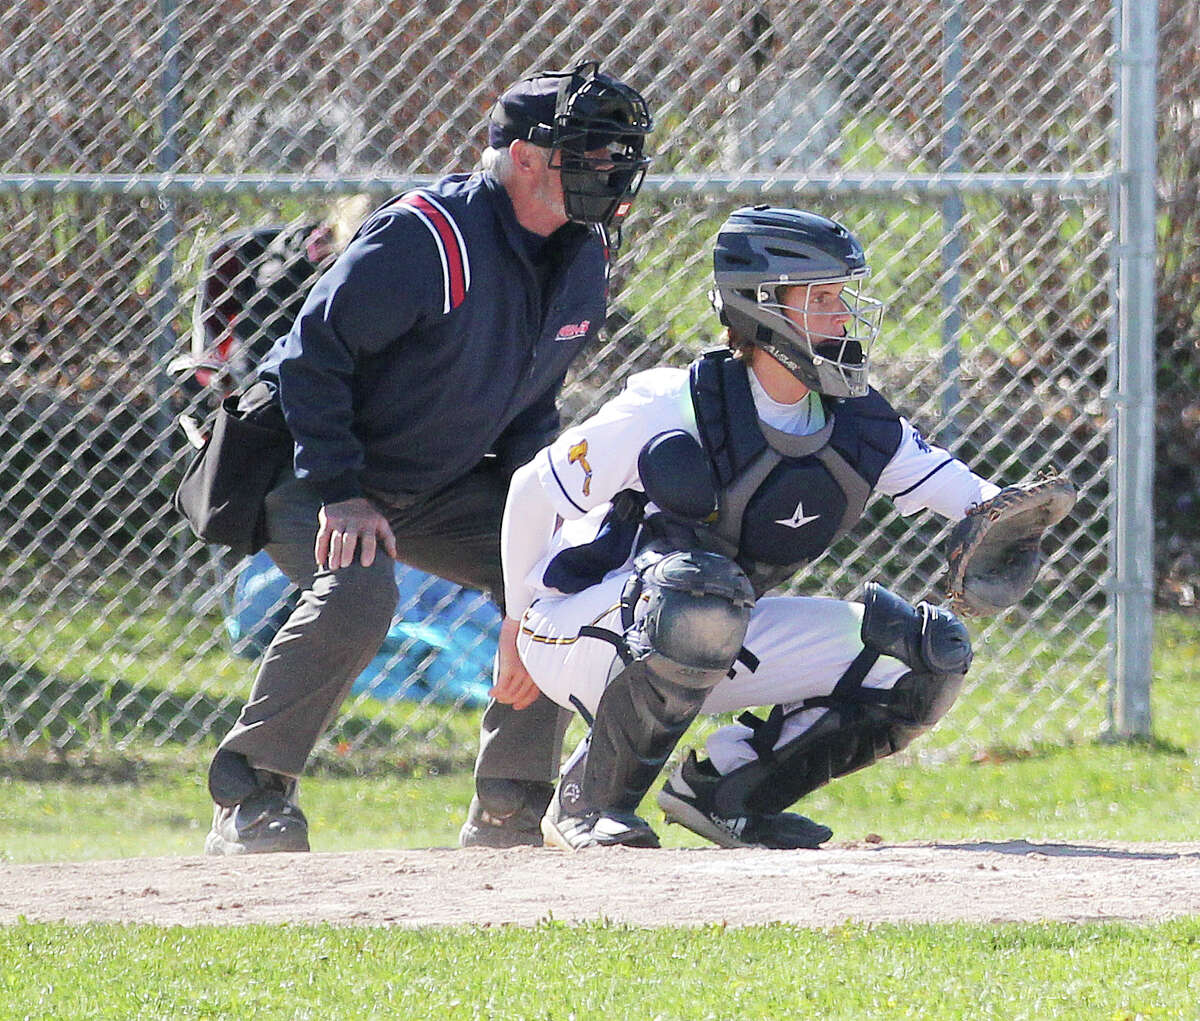 The Bad Axe baseball team topped visiting Sandusky, 8-3, on Thursday afternoon before dropping the second game of a doubleheader by the score of 5-2.